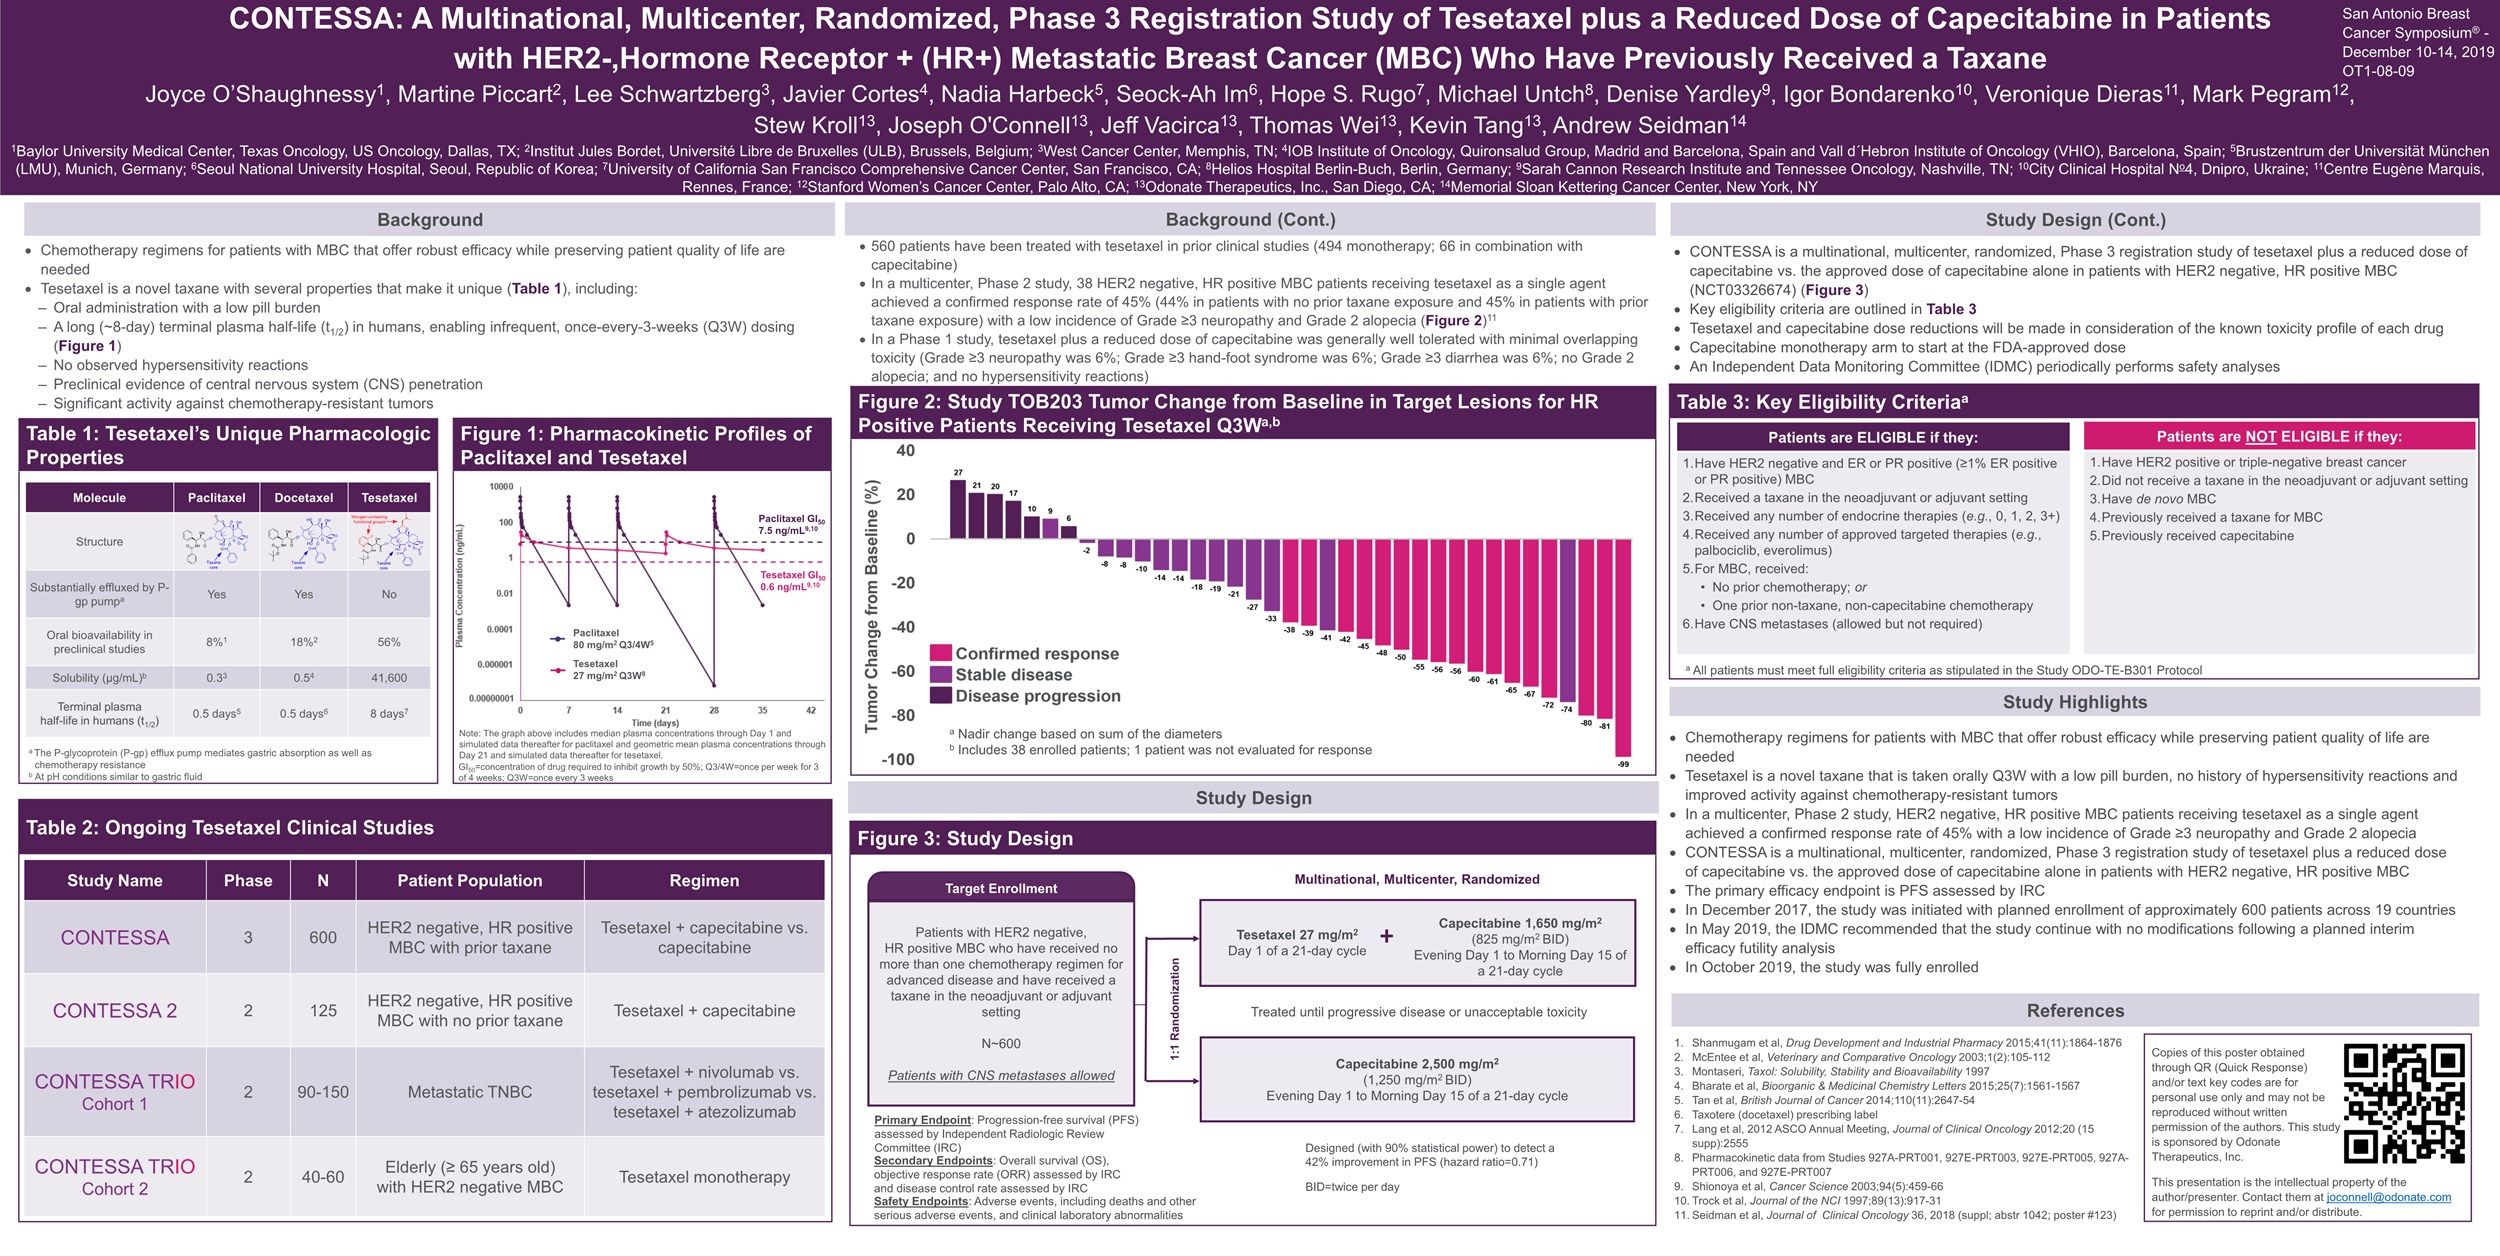 CONTESSA: A multinational, multicenter, randomized, phase 3 registration study of testaxel plus a reduced dose of capecitabine in patients with HER2-, hormone receptor + (HR+) metastatic breast cancer (MBC) who have previously received a taxane